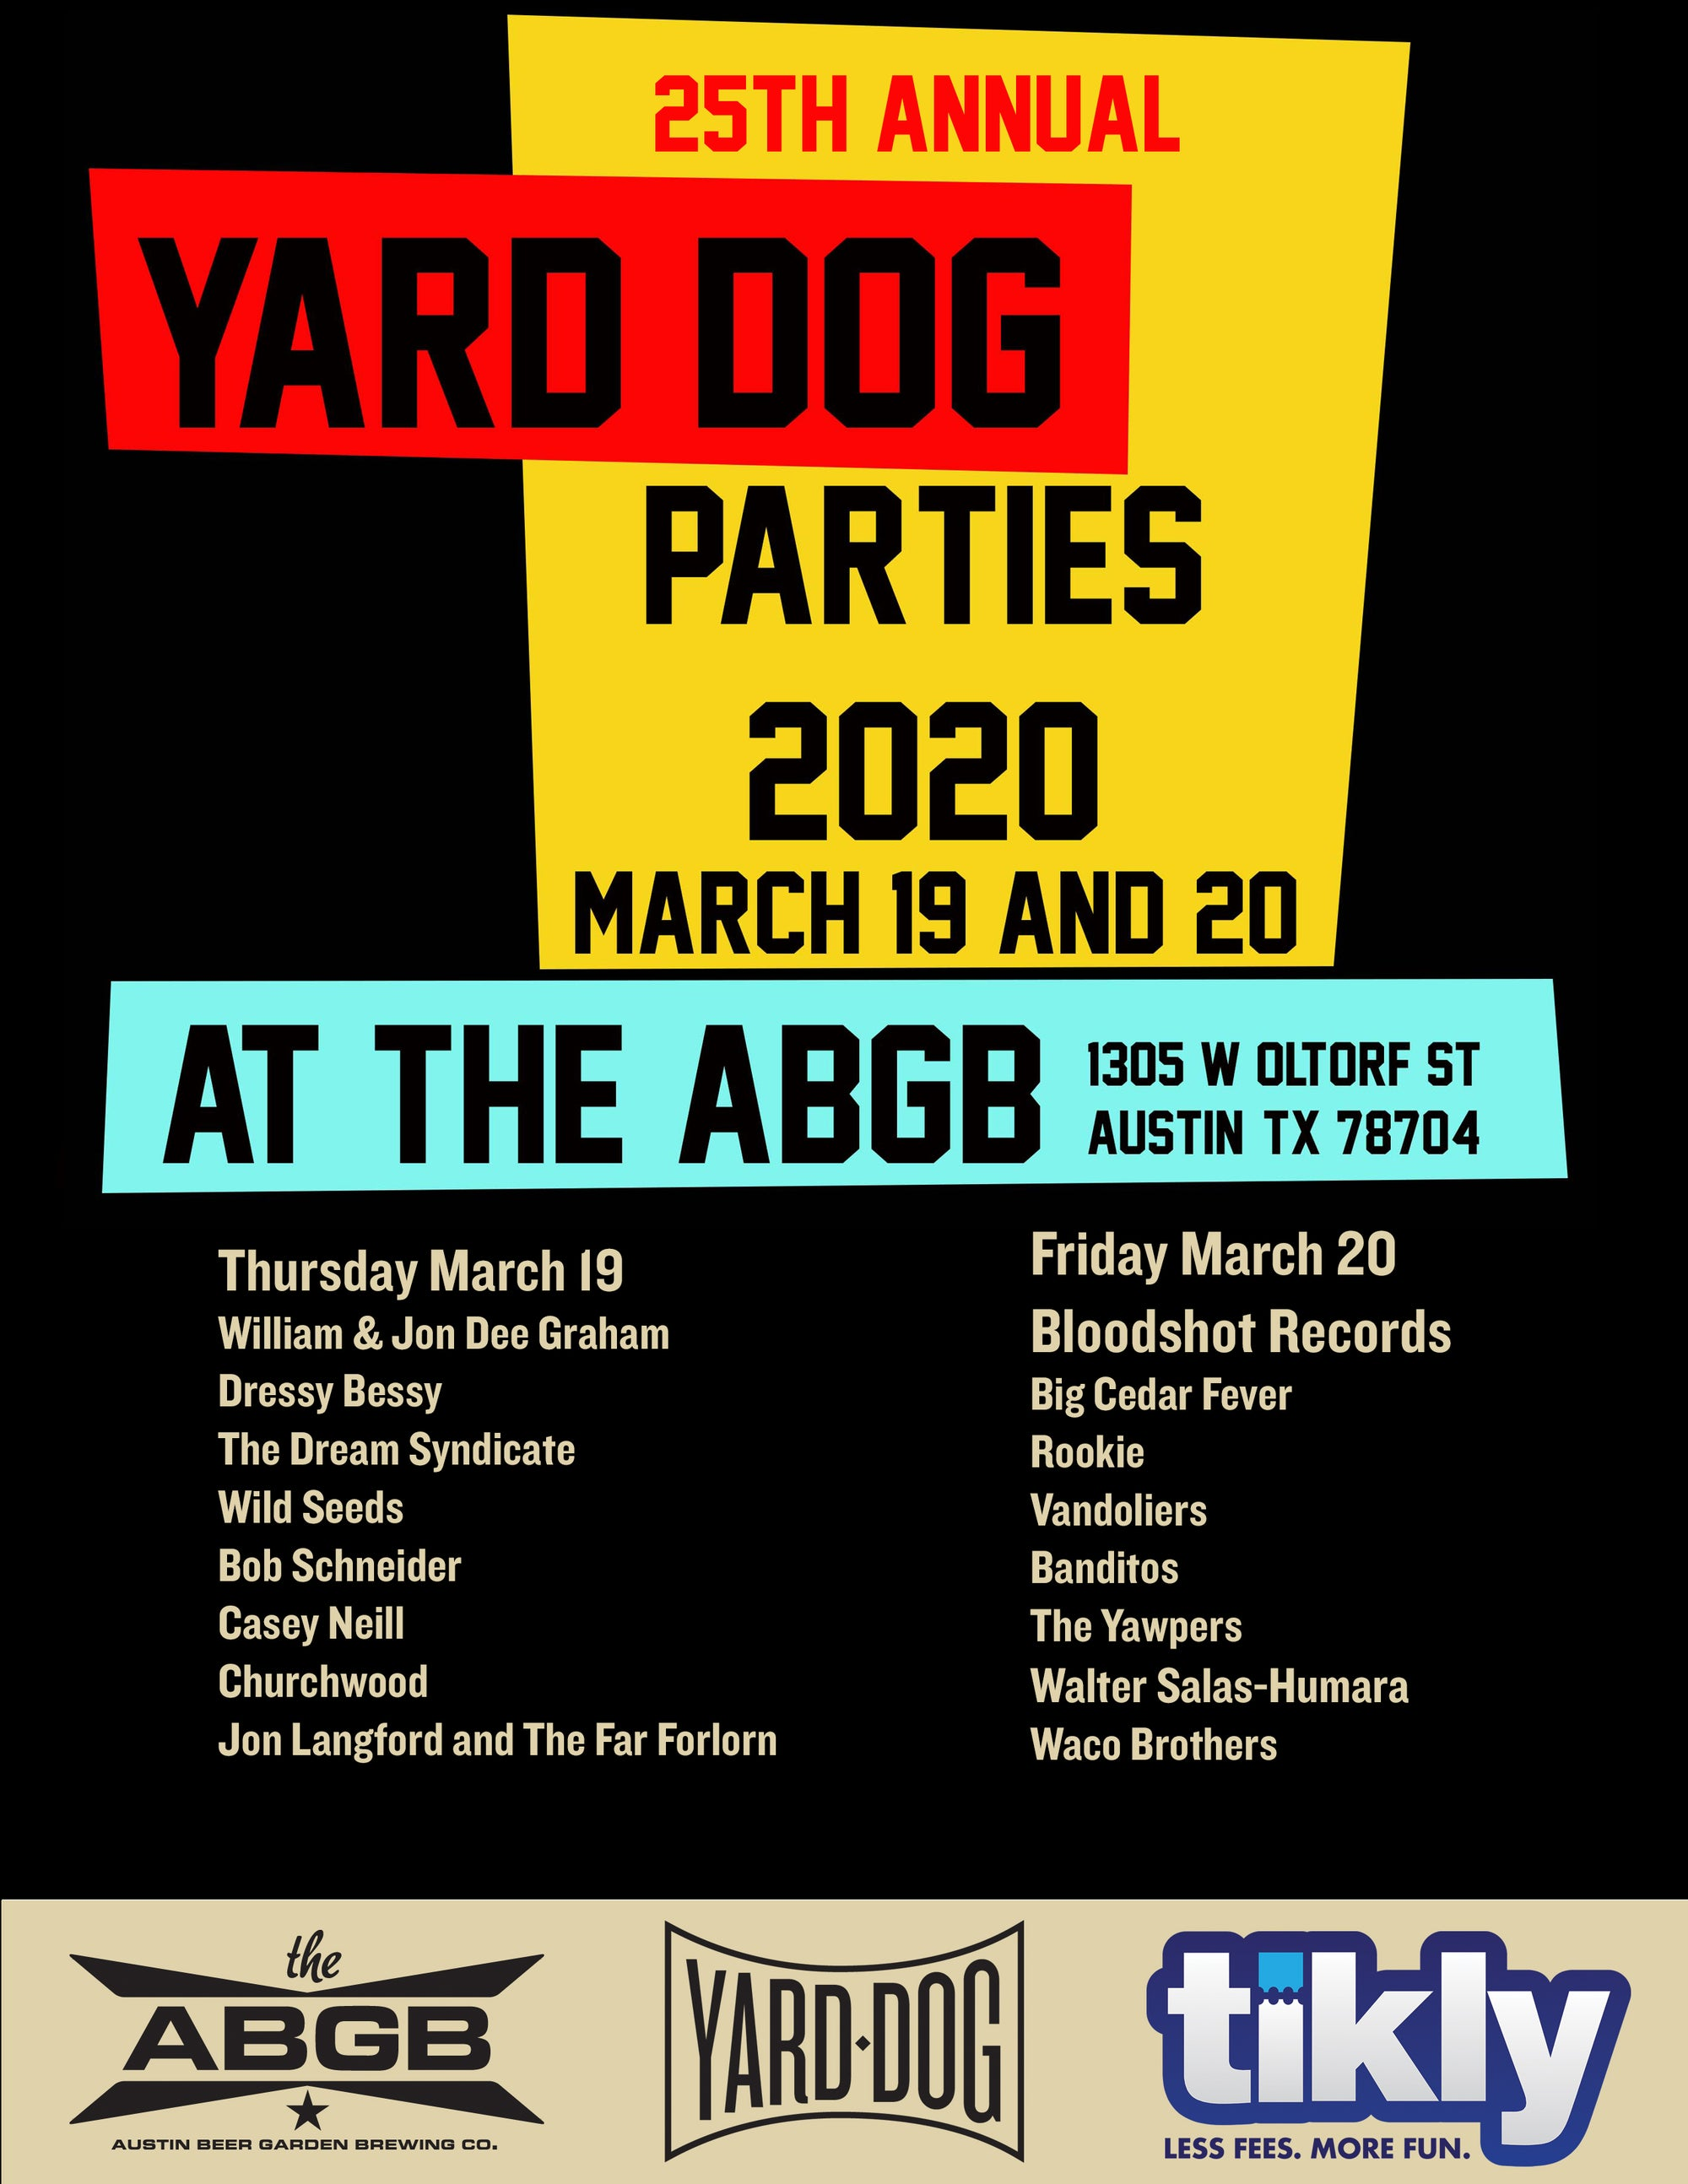 Yard Dog Parties 2020